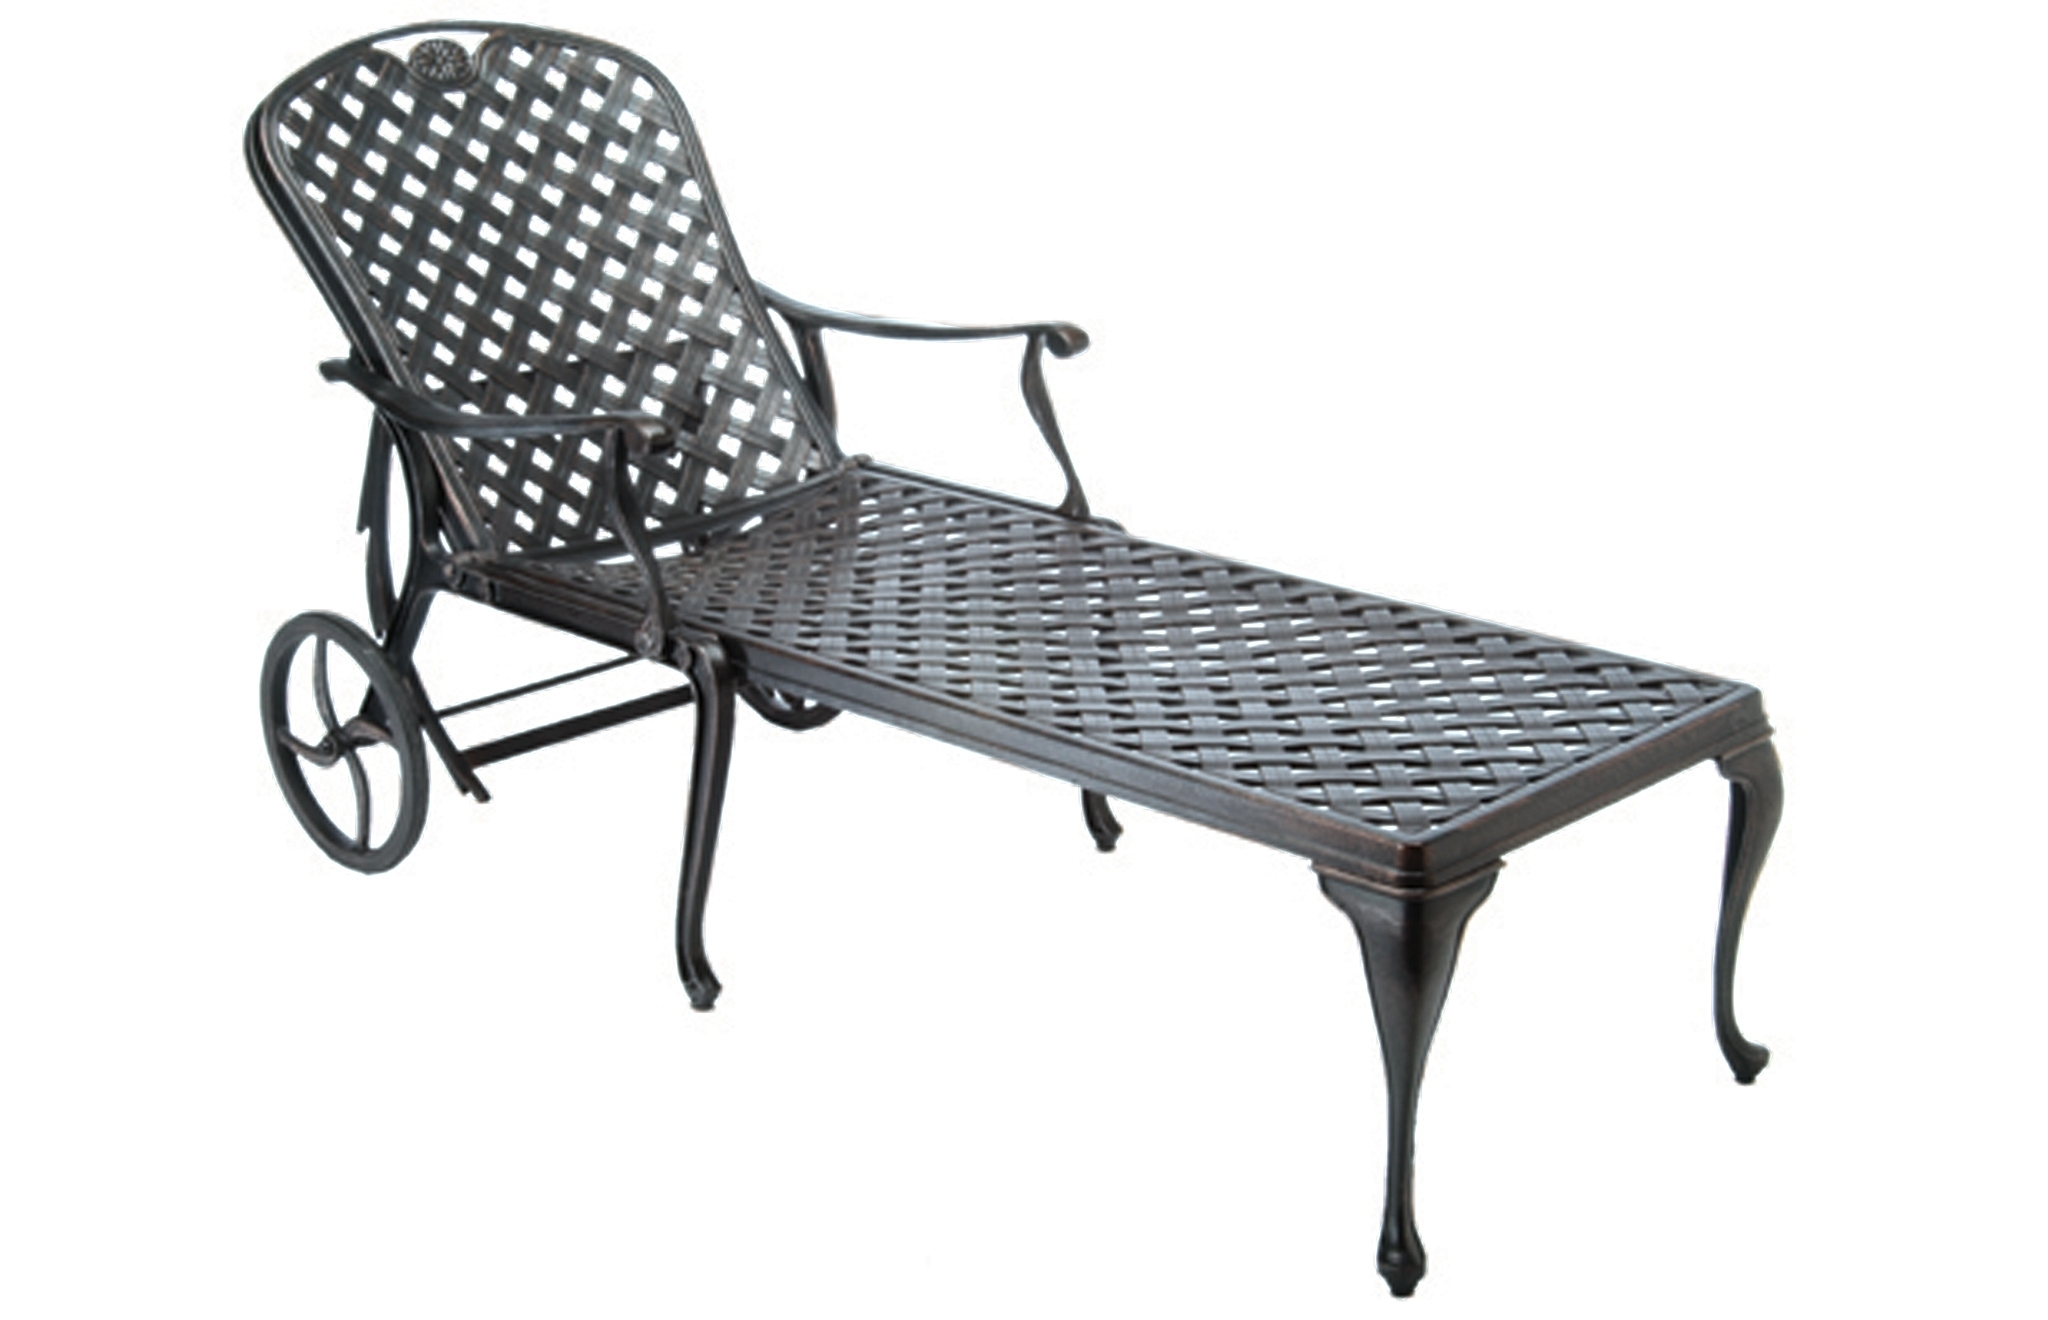 2018 Fall: The Best Season For Entertaining With Outdoor Furniture Within Cast Aluminum Chaise Lounges (View 9 of 15)